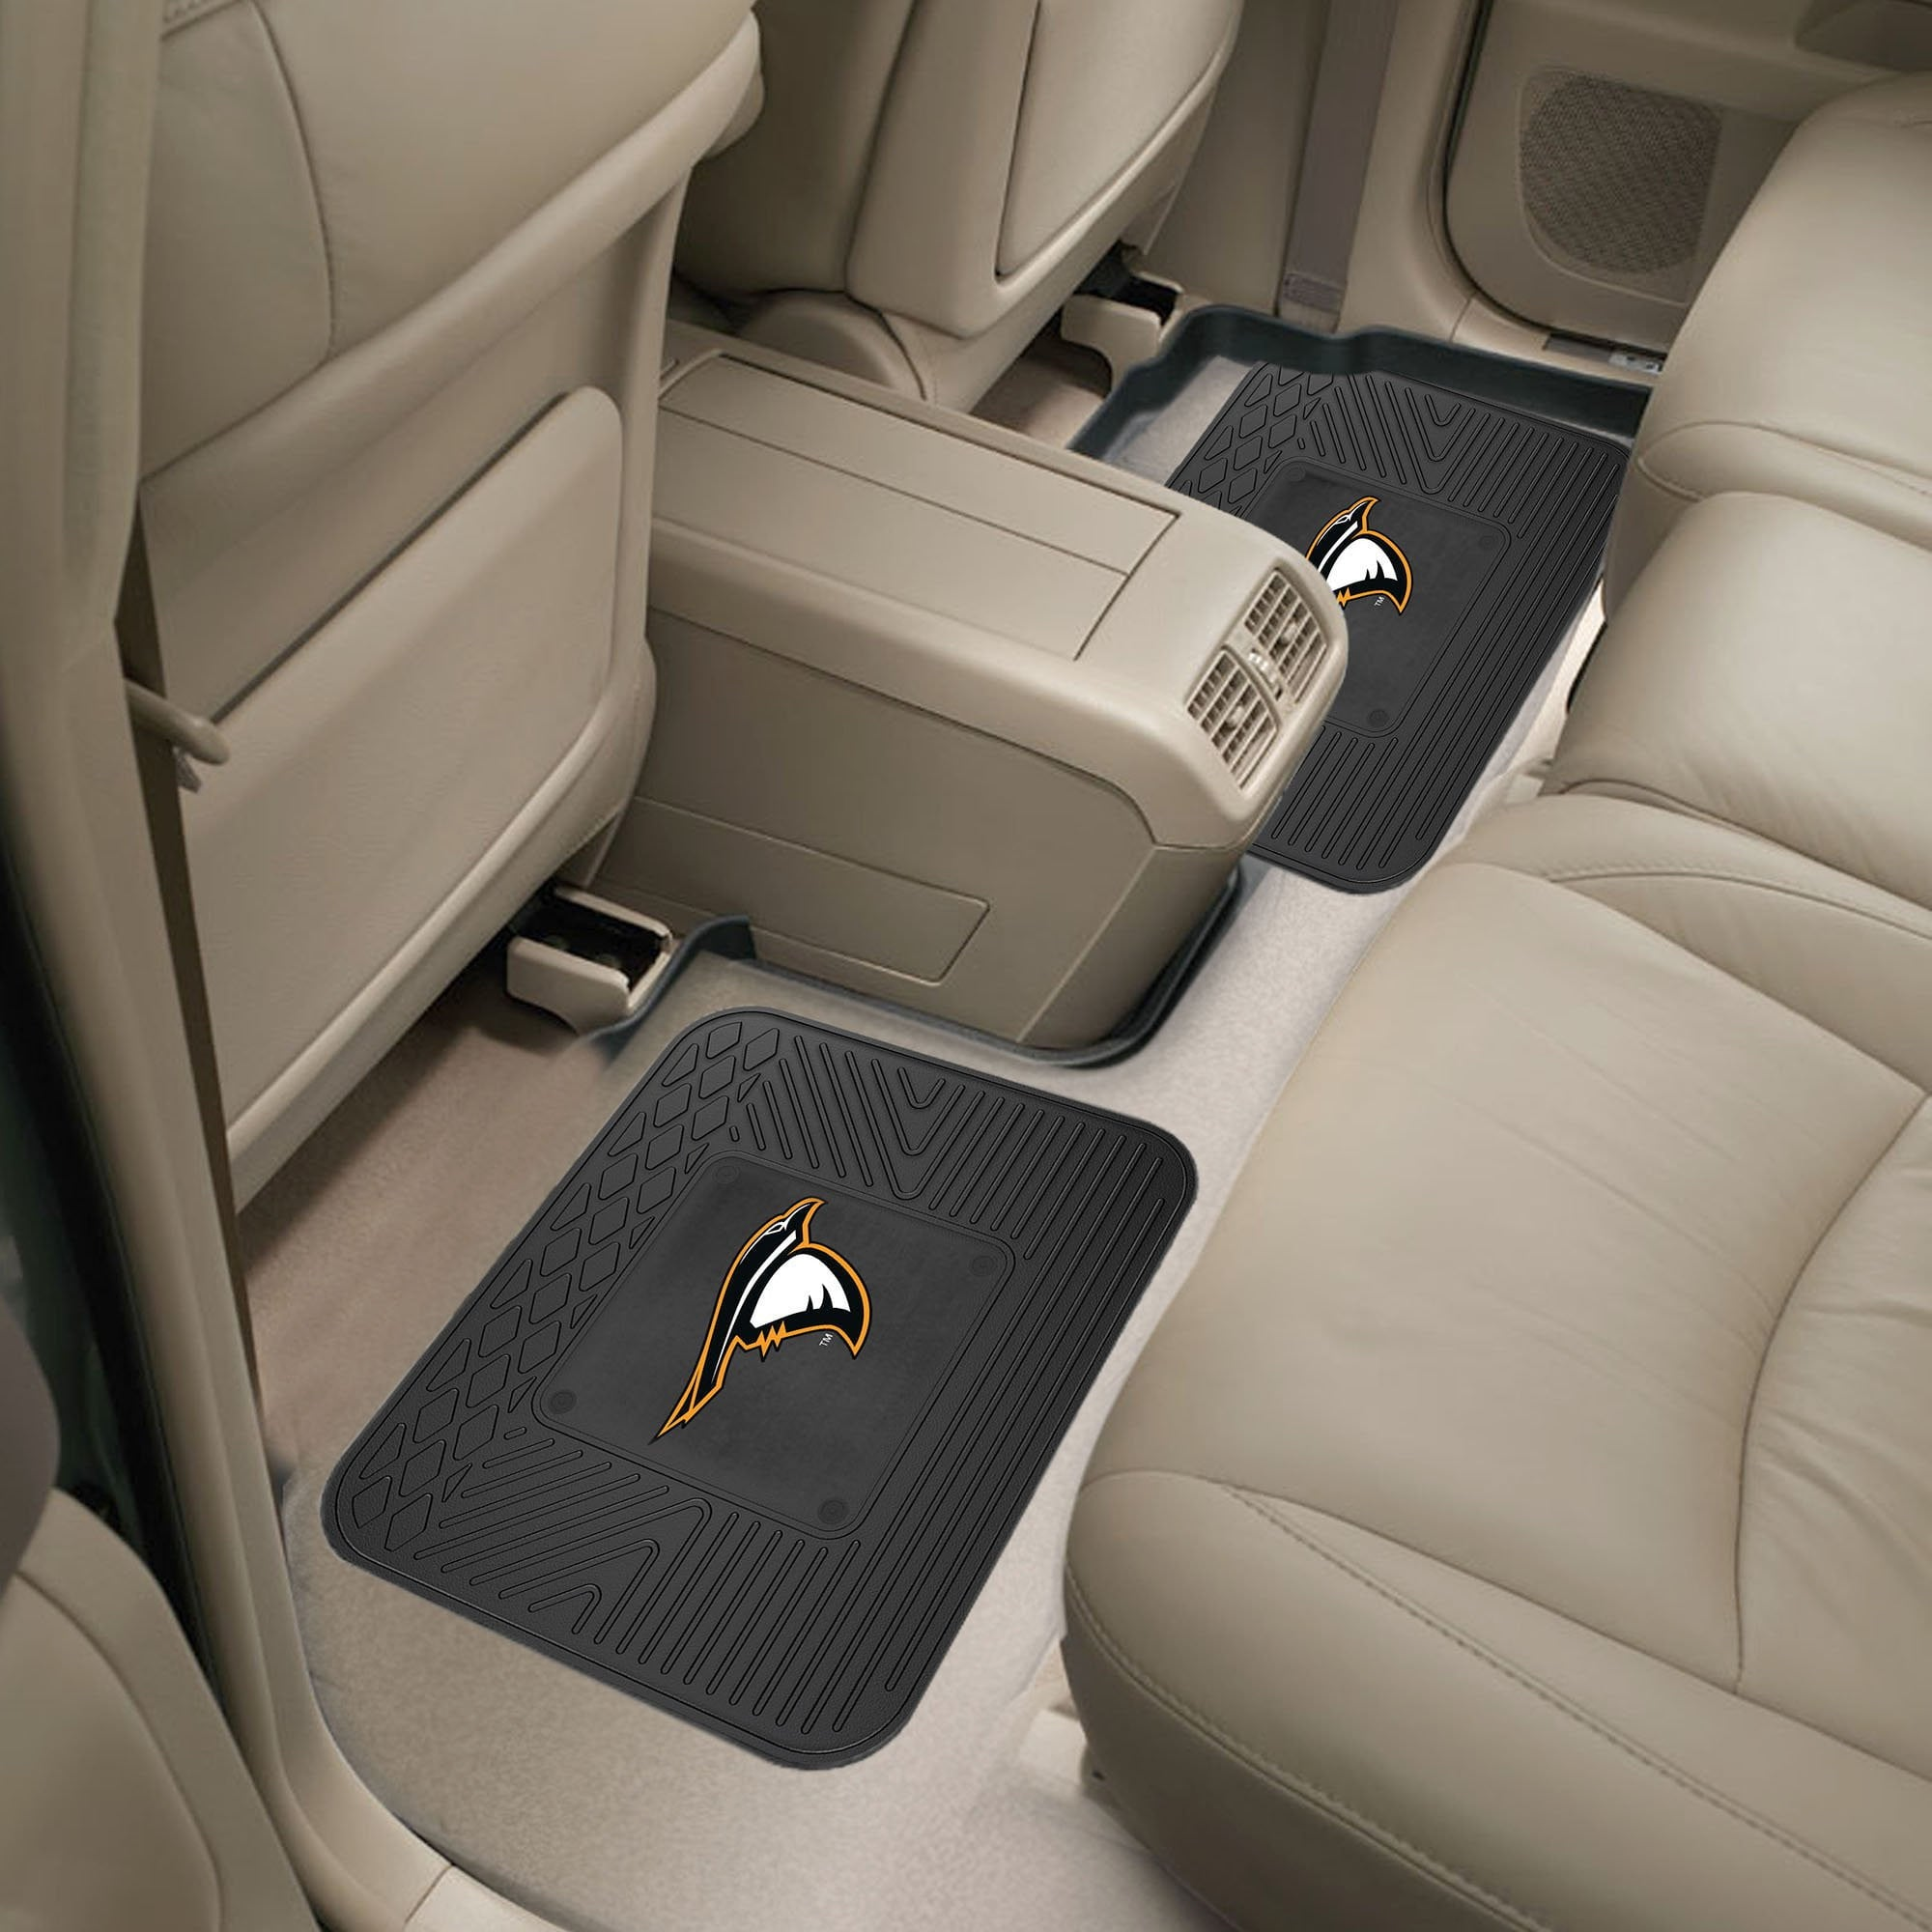 Anderson University (IN) 2 Utility Car Mats